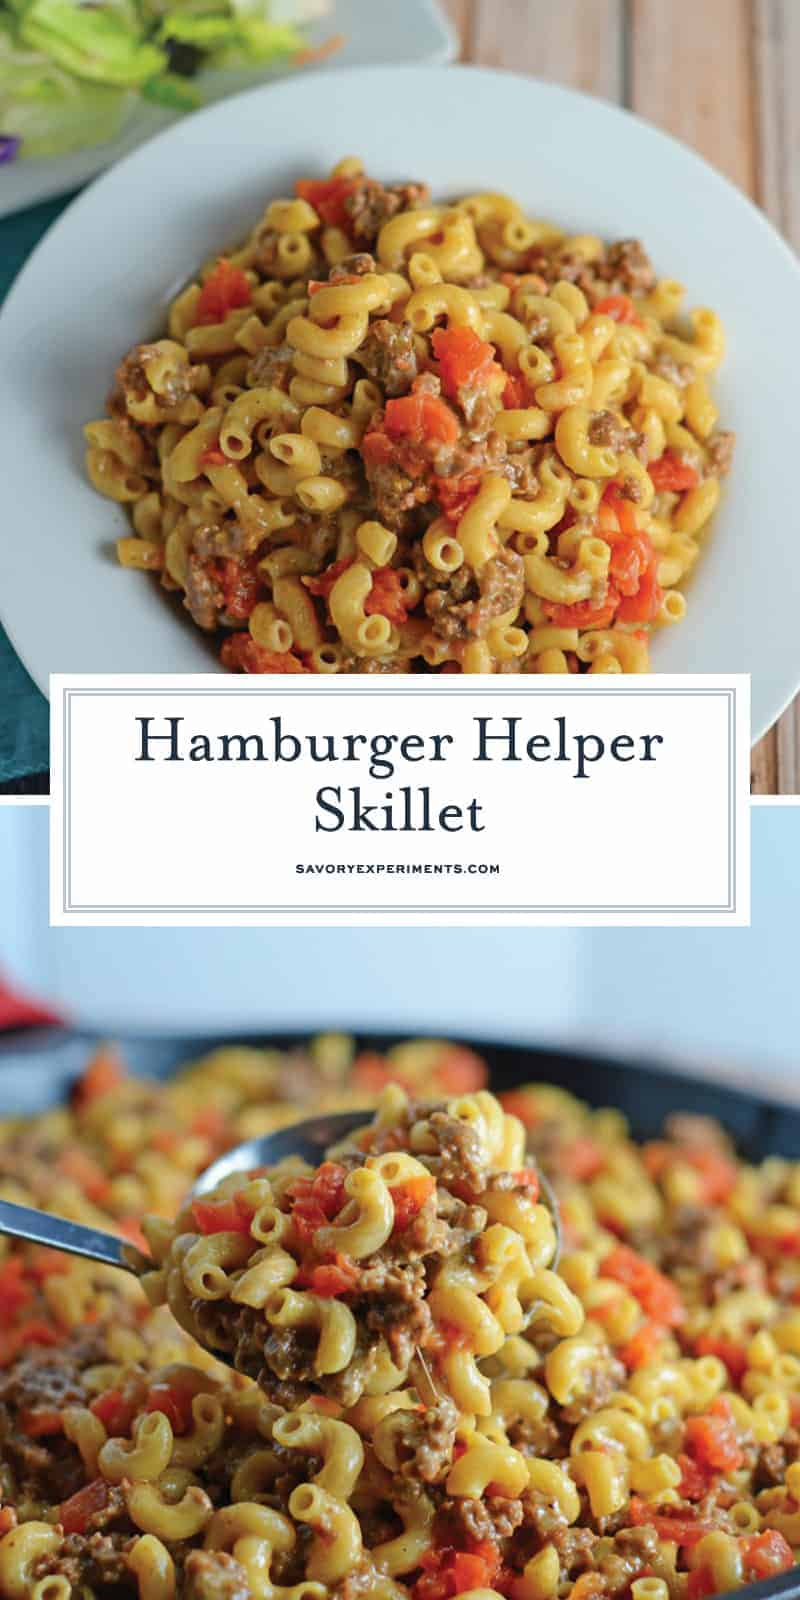 Homemade Hamburger Helper Skillet is a  great ground beef recipe with cheddar cheese, seasonings and tomatoes all ready in 20-minutes! #hamburgerhelper #onedishmeal #castironskilletrecipes #groundbeefrecipes www.savoryexperiments.com